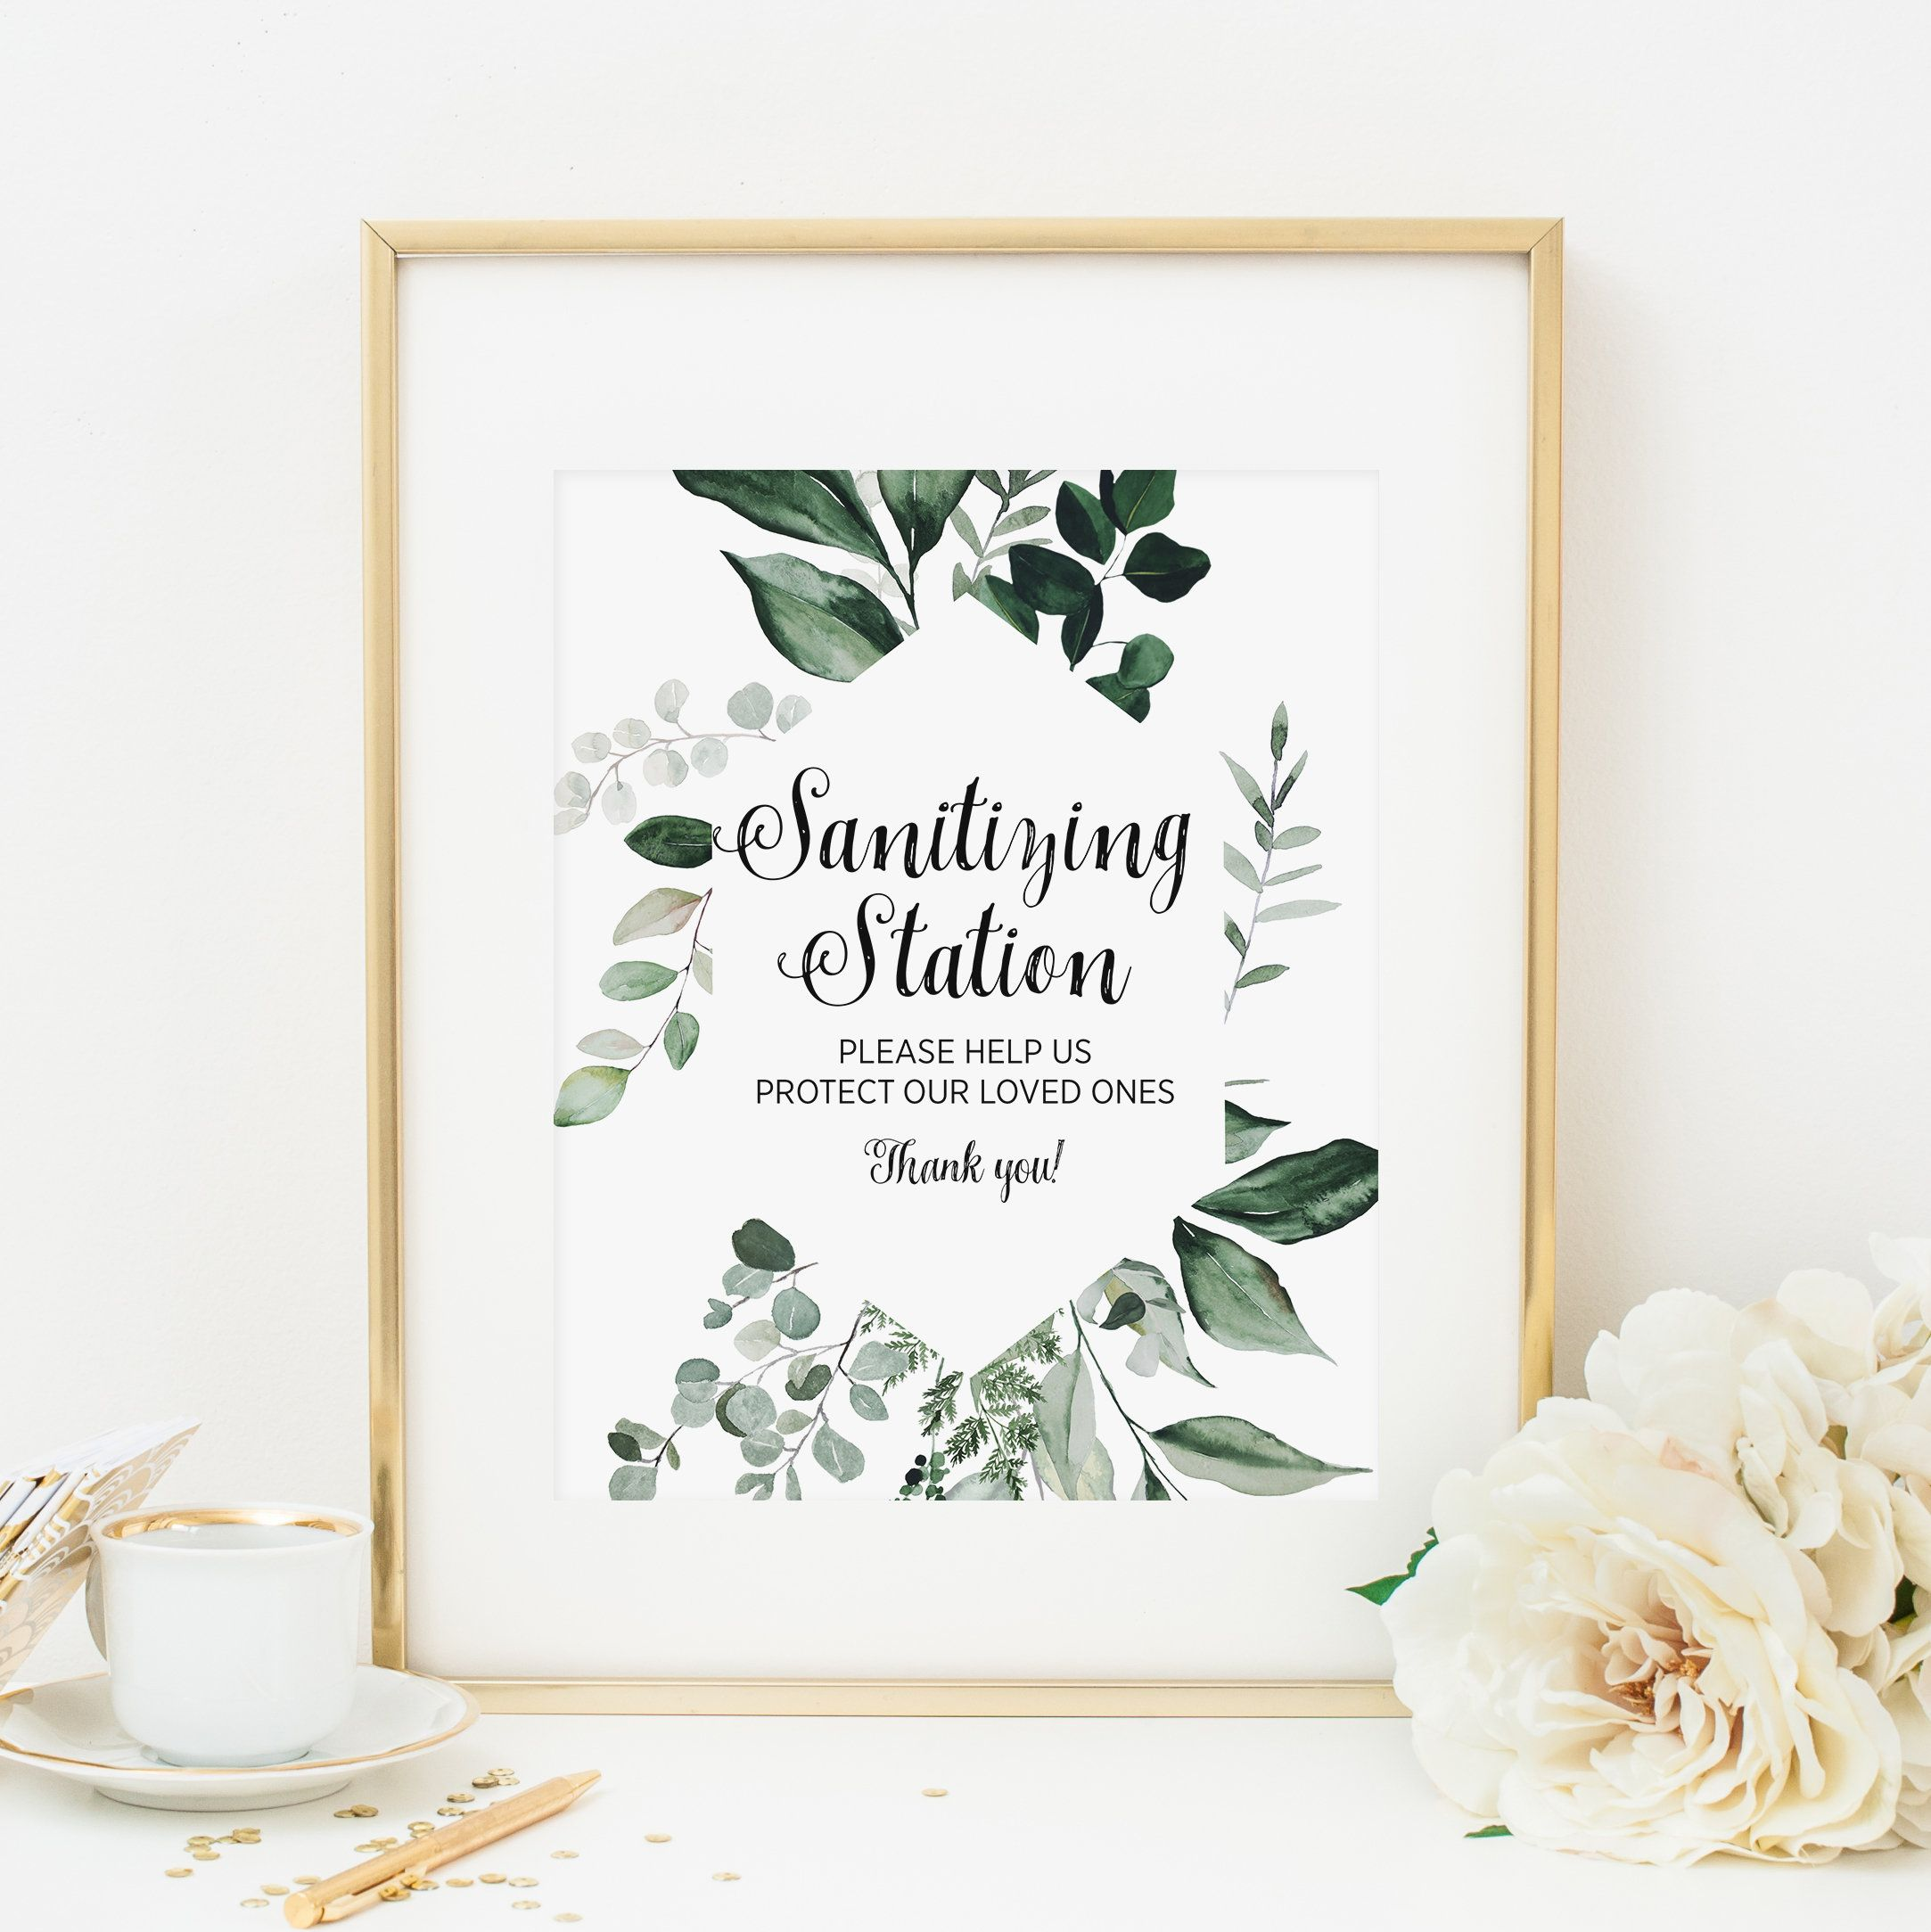 Christmas Bridal Shower Decor Party Decor 8x10 Forest Baby Shower Decoration Winter Evergreen Welcome Sign Editable Corjl Template 110